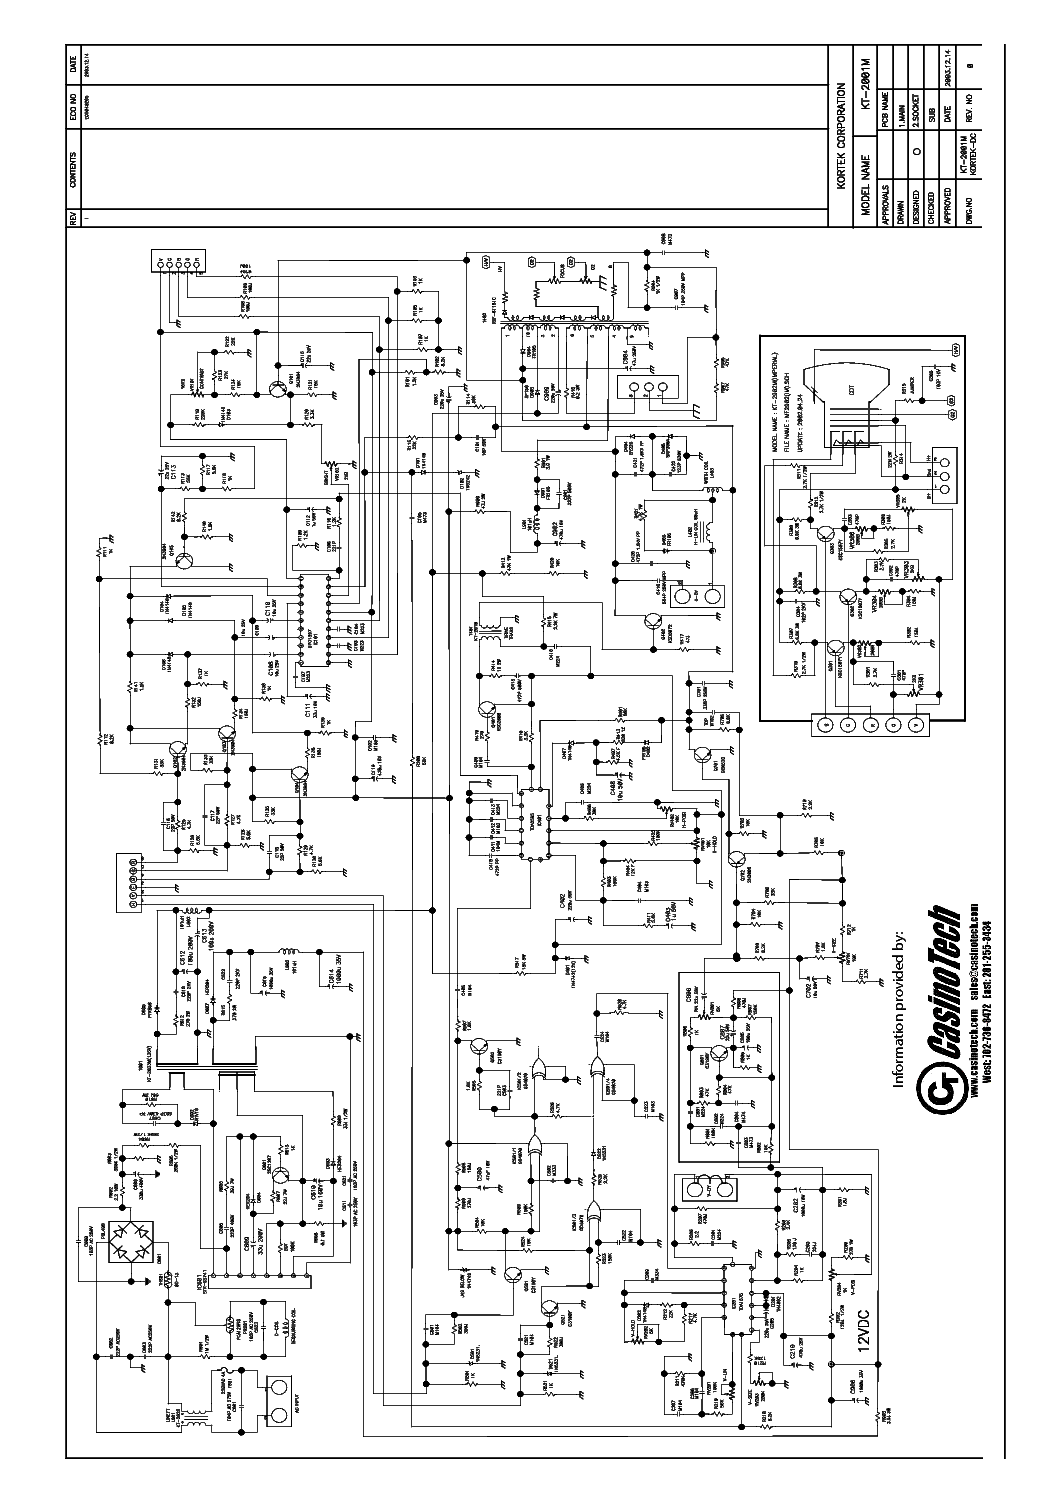 KORTEK KT2001M Service Manual download, schematics, eeprom